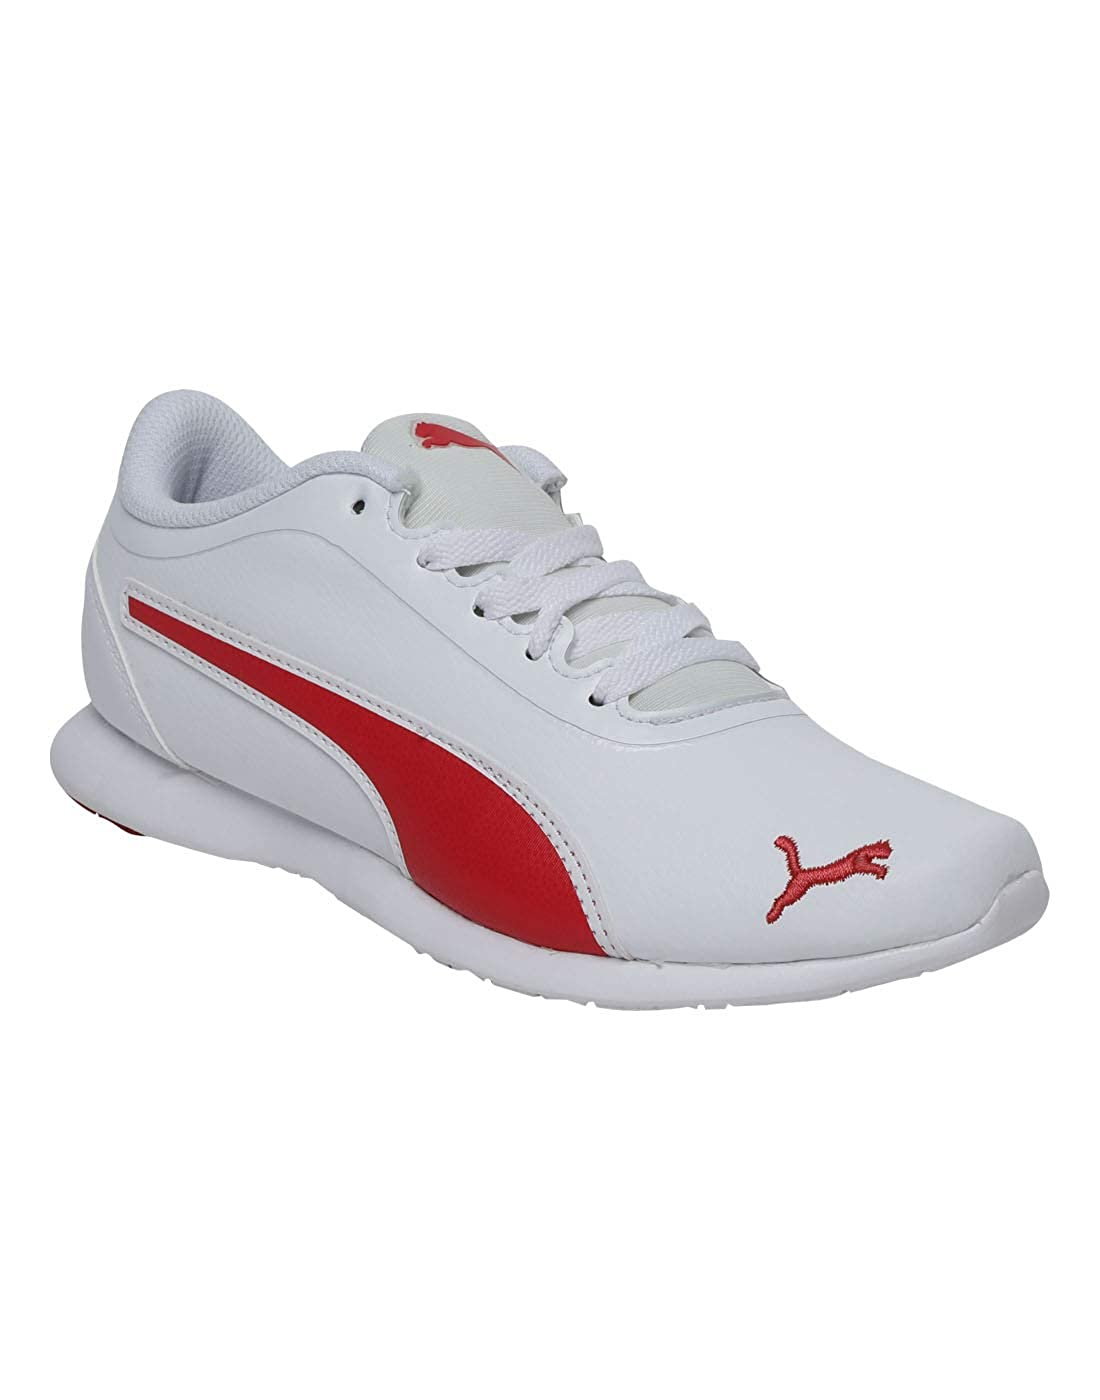 7cb65ac55d Puma Puma Vega Sweet SL IDP Puma White-Hibisc: Amazon.in: Shoes ...